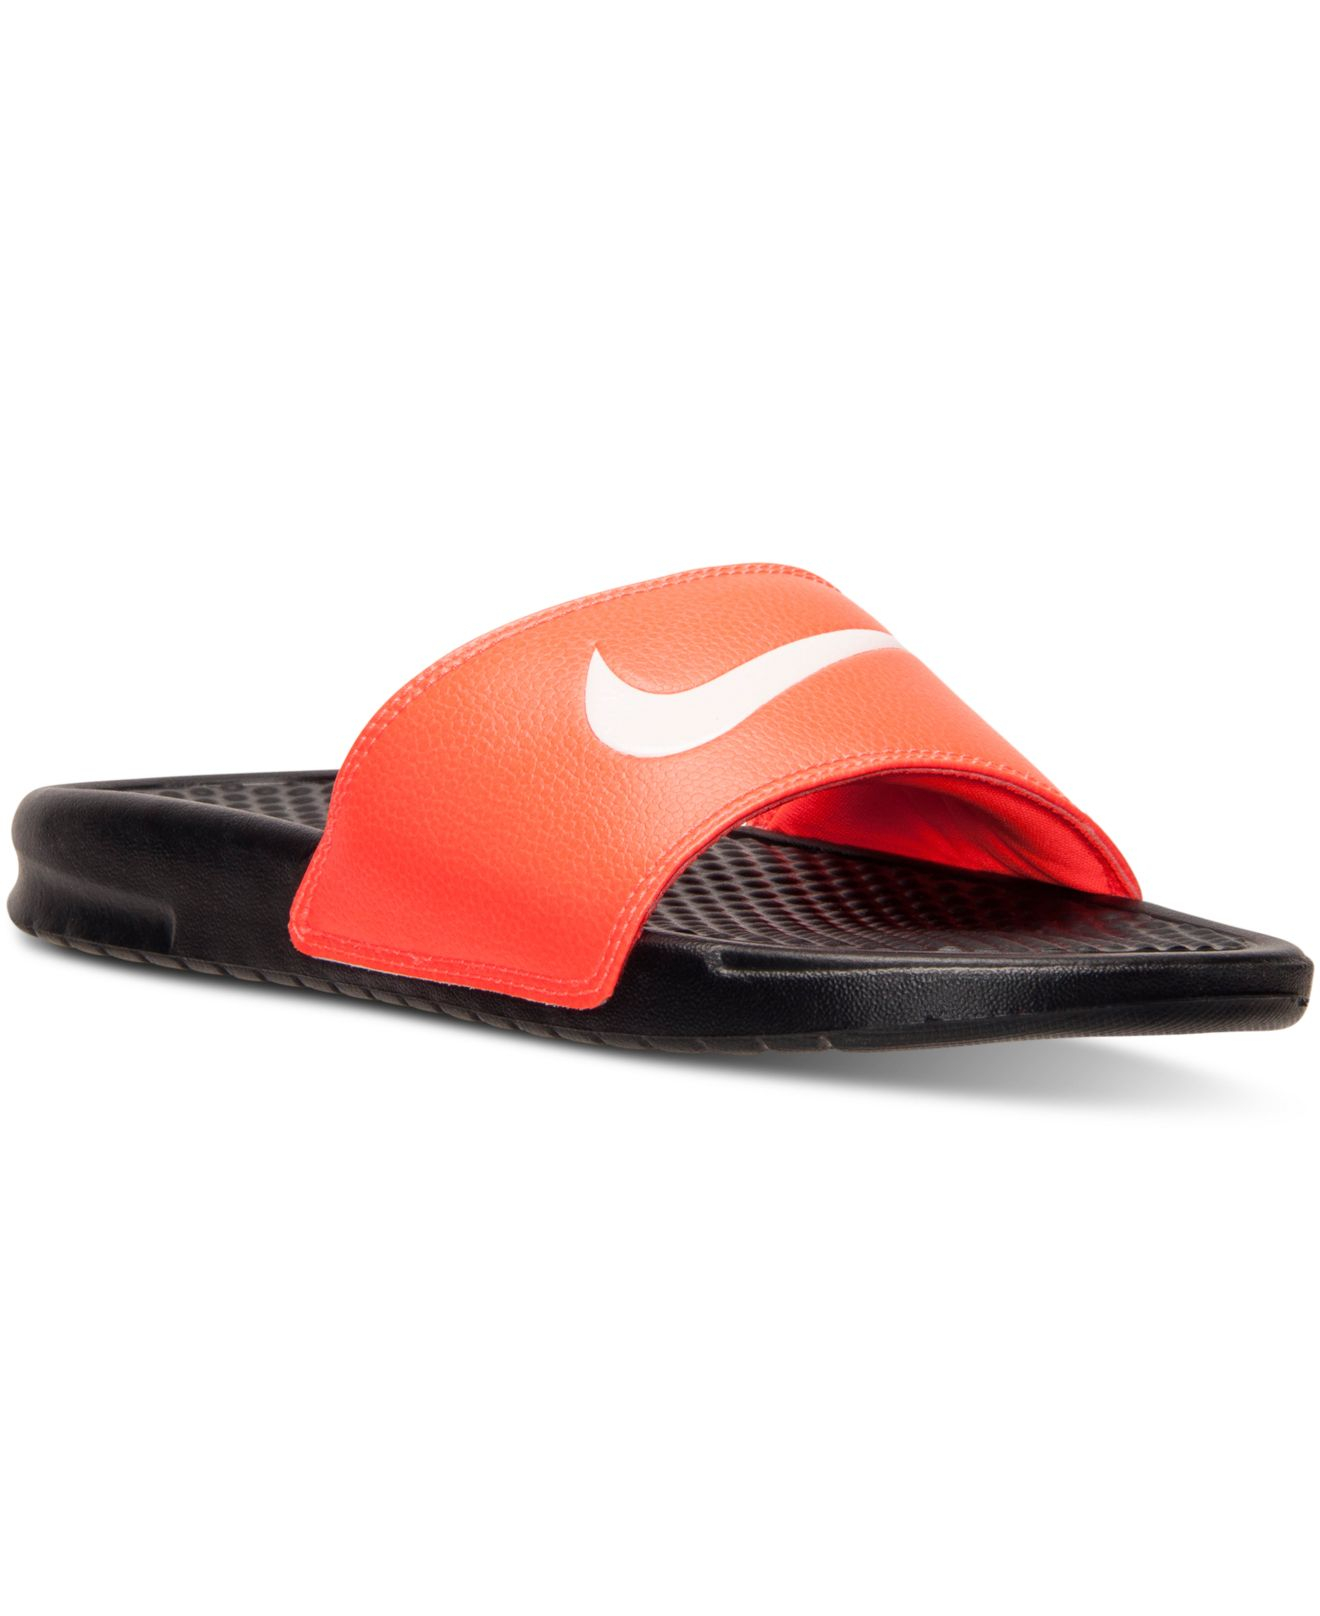 77a970dfe Lyst - Nike Men s Benassi Swoosh Slide Sandals From Finish Line in ...